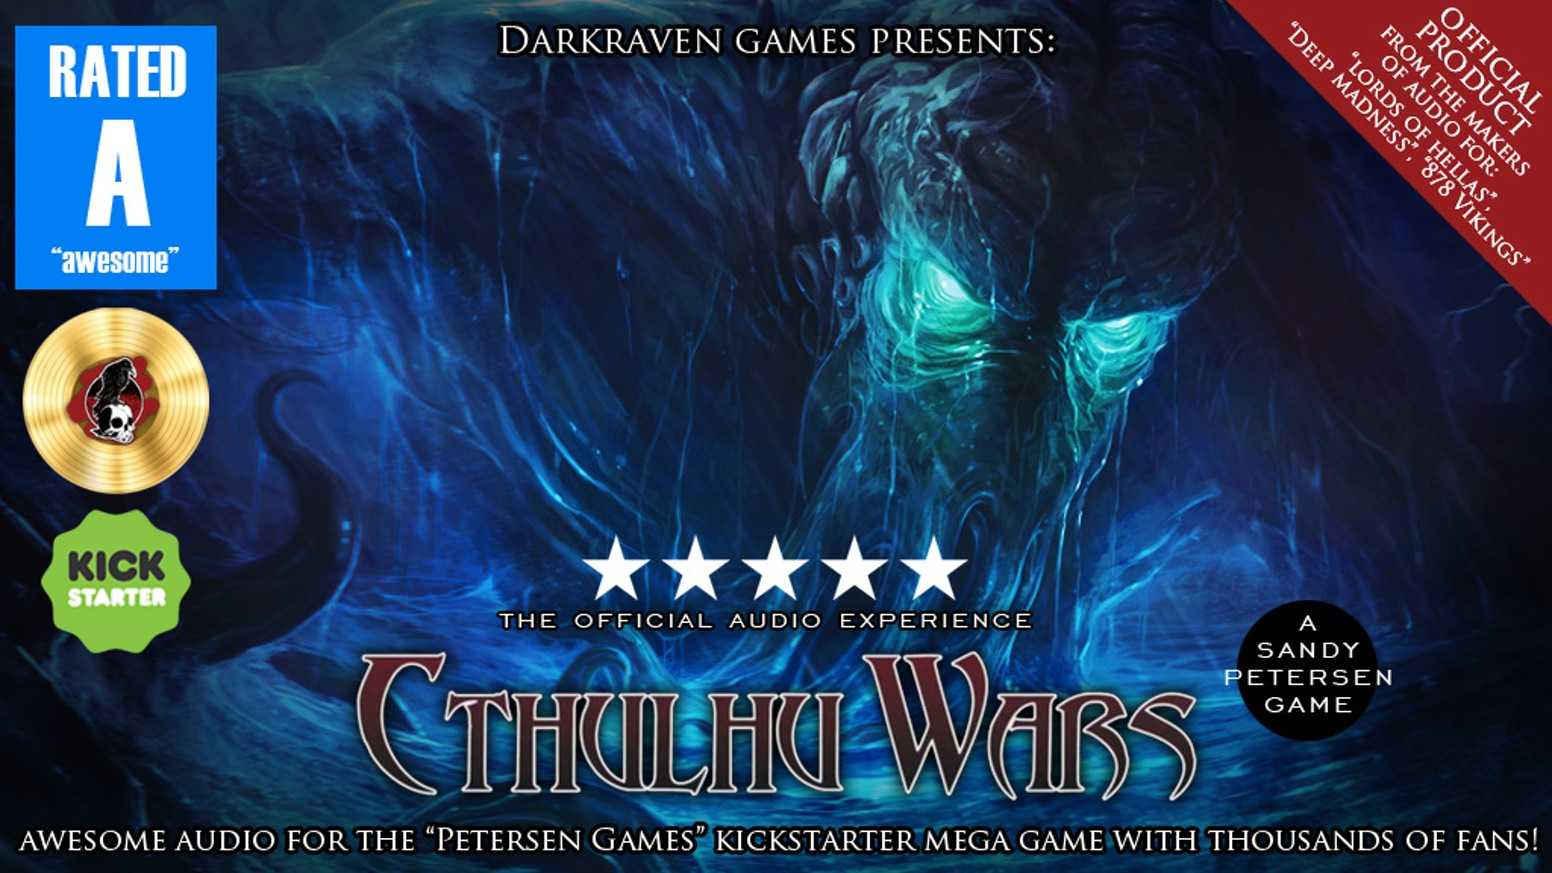 """Awesome audio for the """"Cthulhu Wars"""" board game by Sandy Petersen. Music and sound by Darkraven Games to bring your apocalypse to life!"""